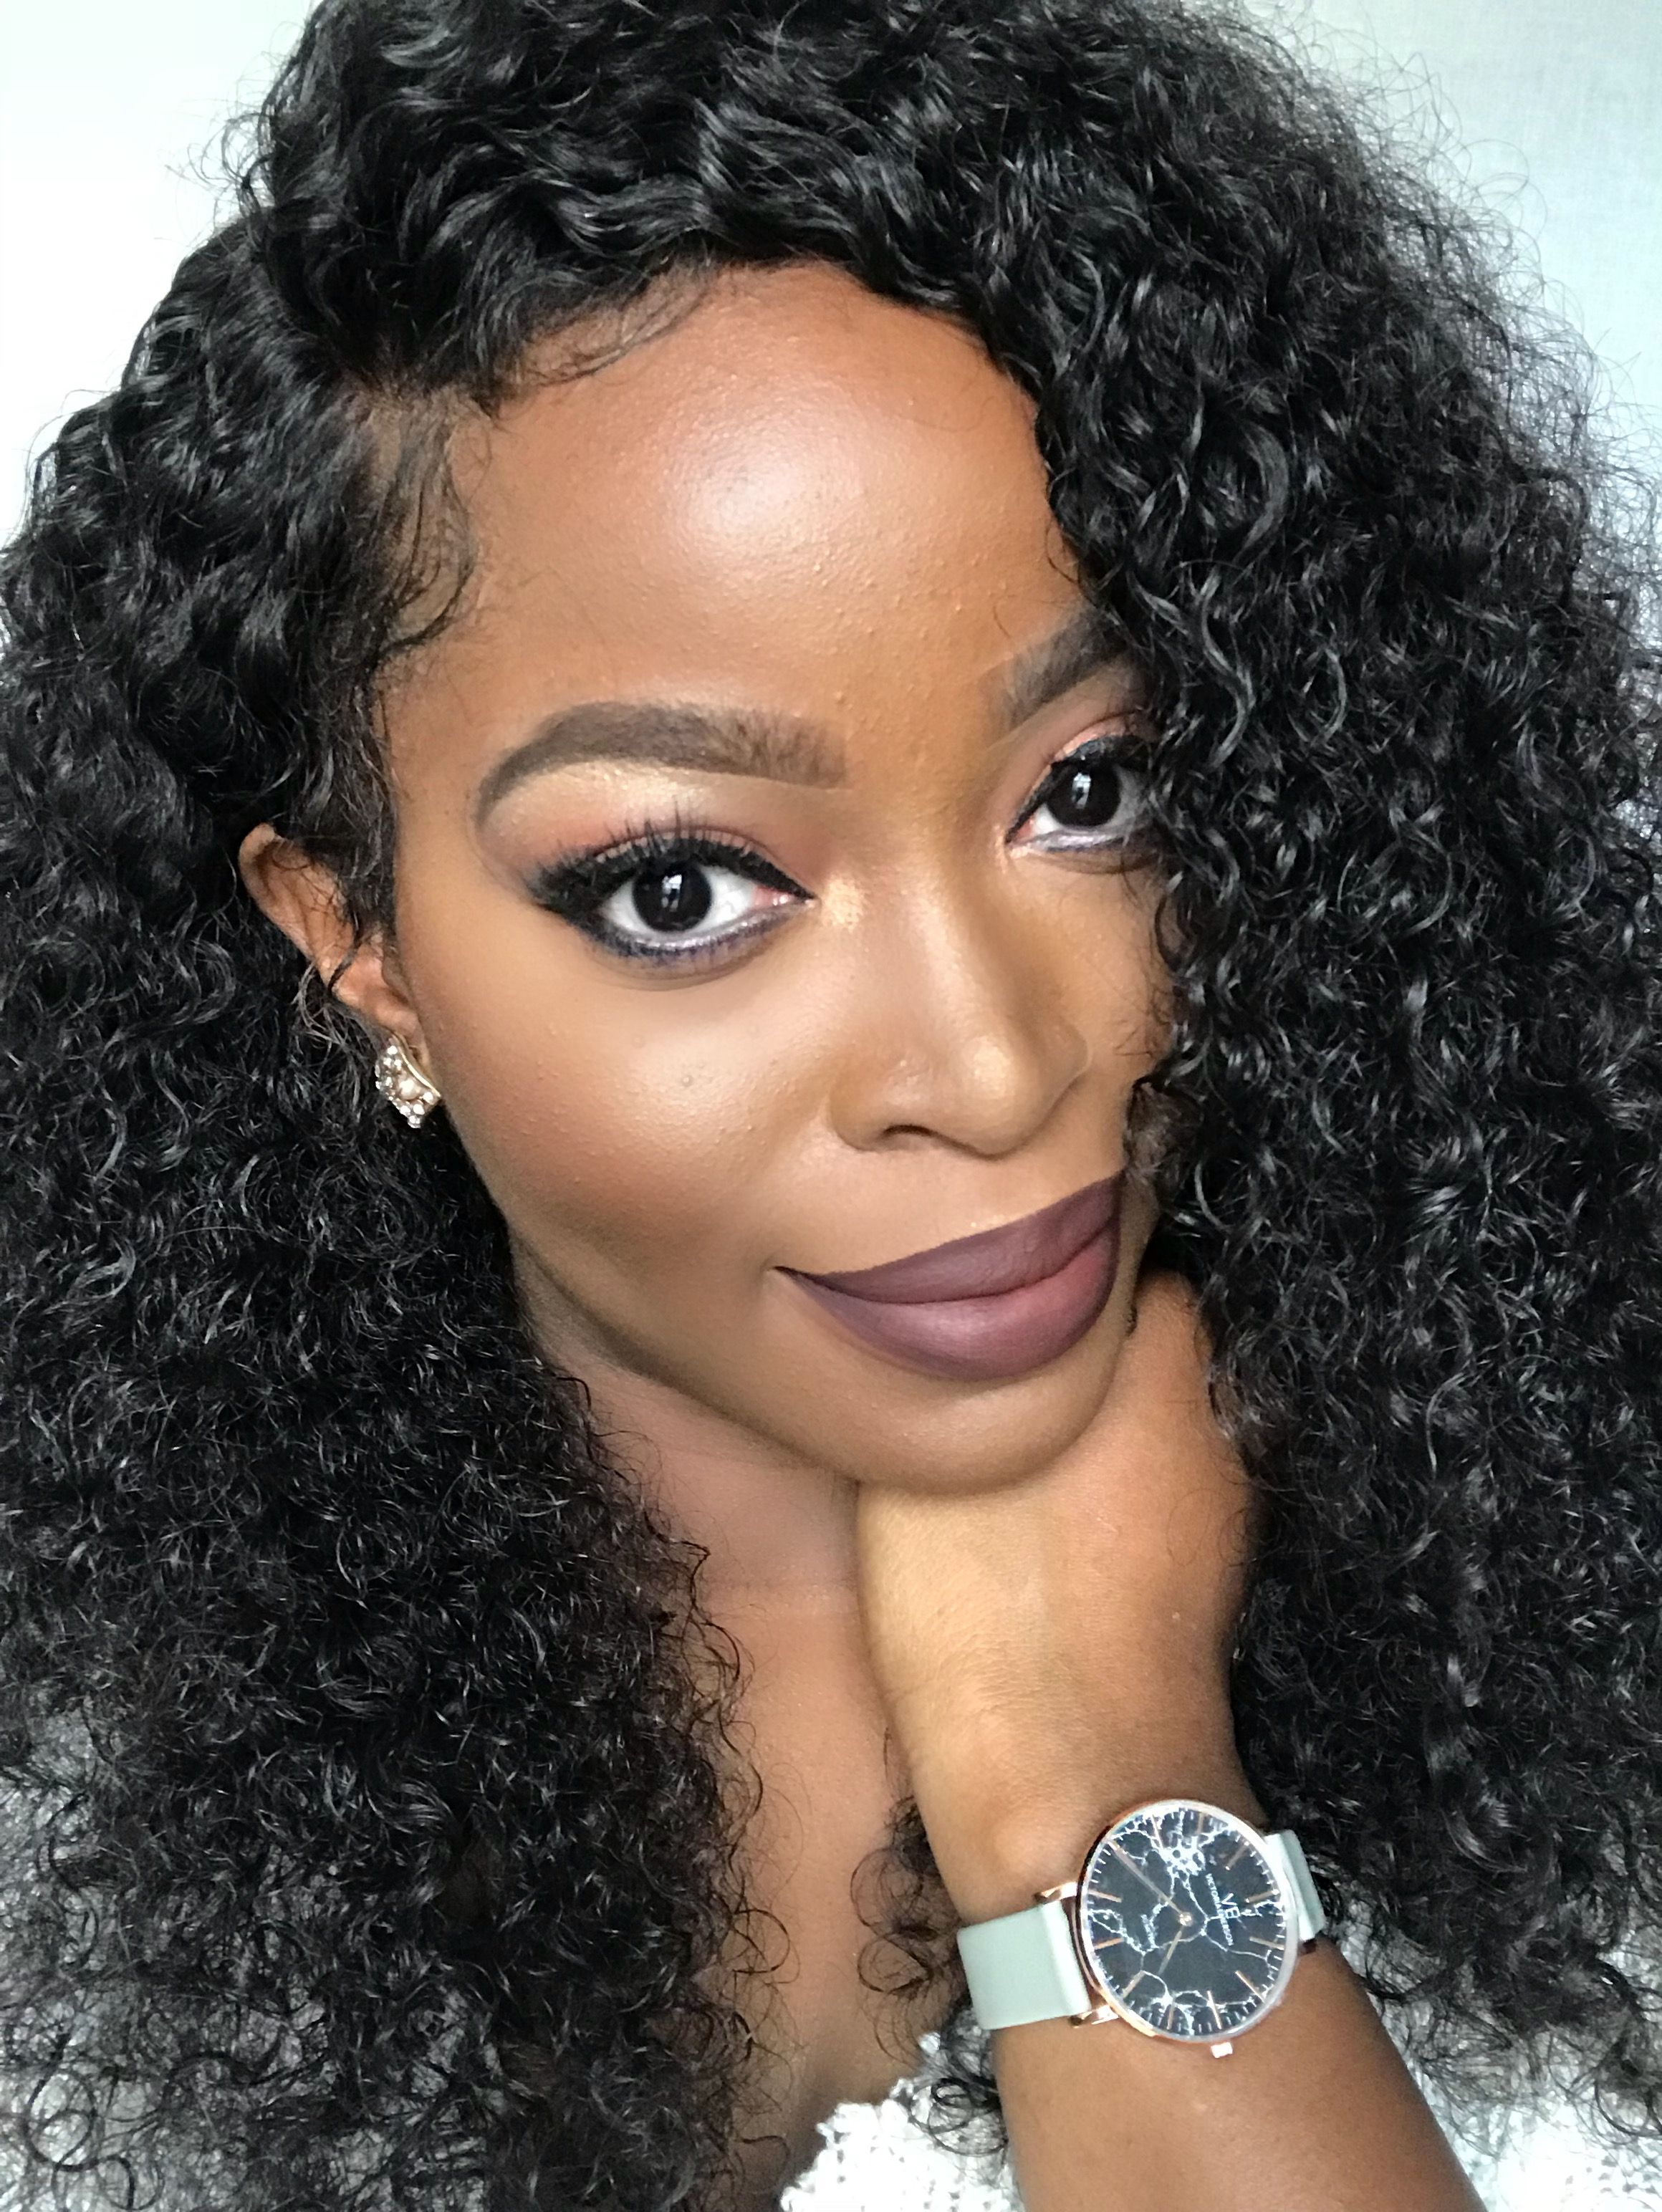 Msnaturallymary Rocking The Hergivenhair Curly Full Lace Wig Click